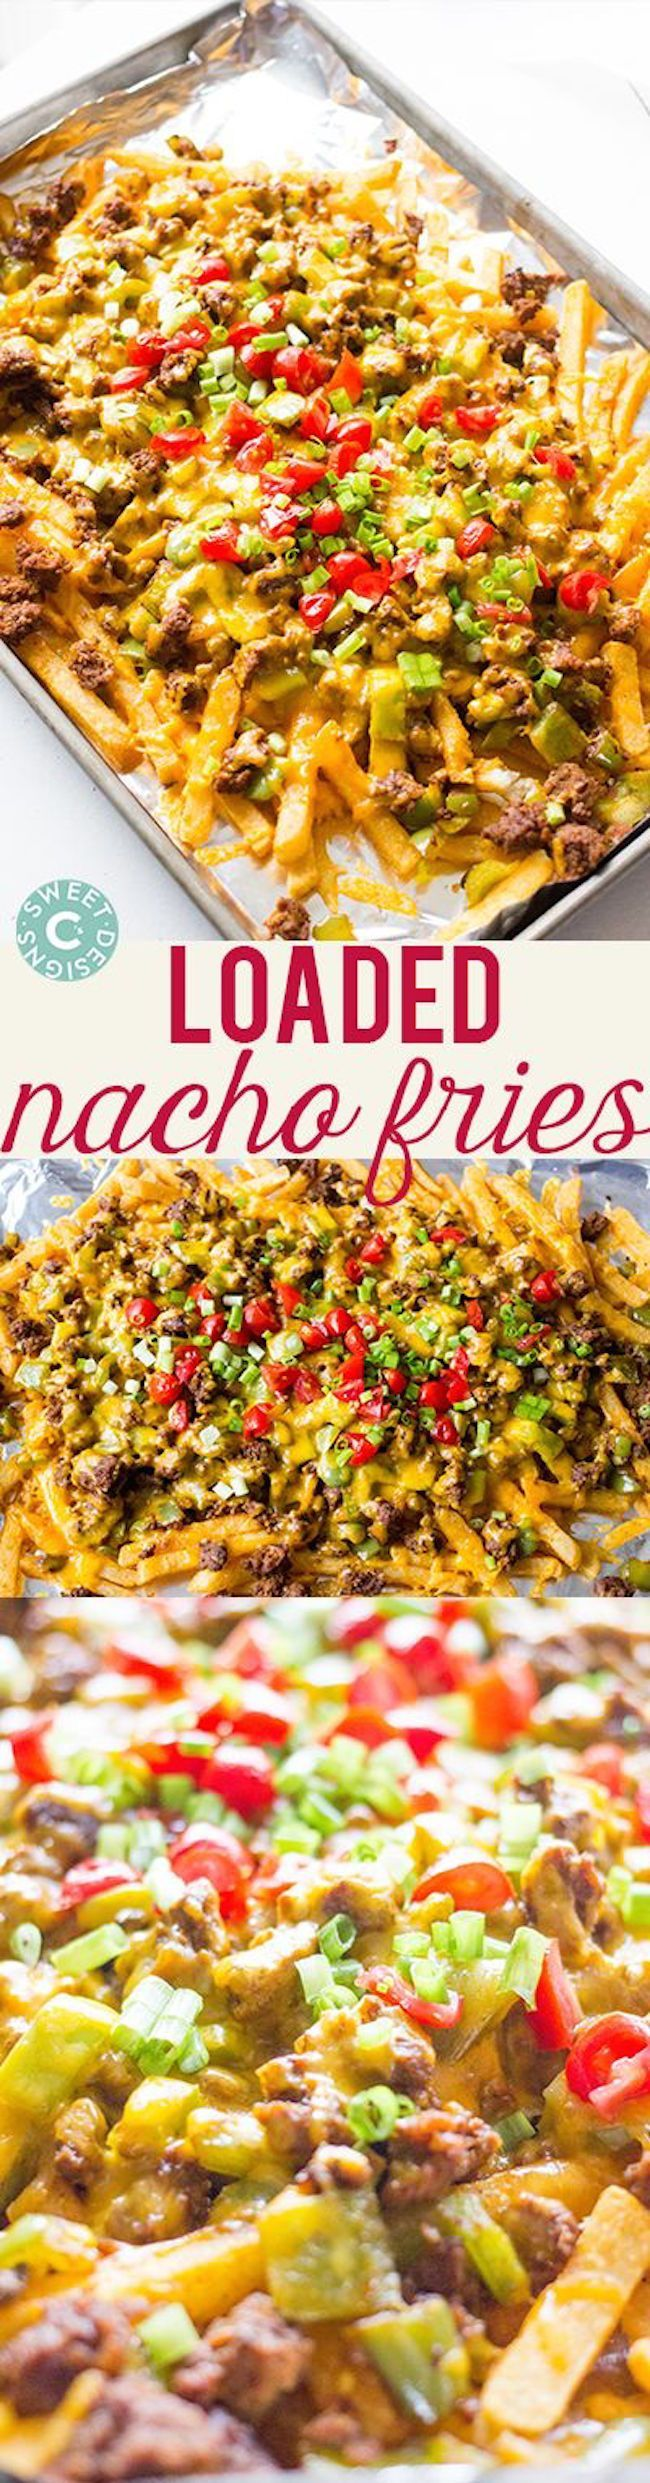 Loaded Nacho Fries from Sweet C's Designs and 10 other great SUPER BOWL RECIPES!!!